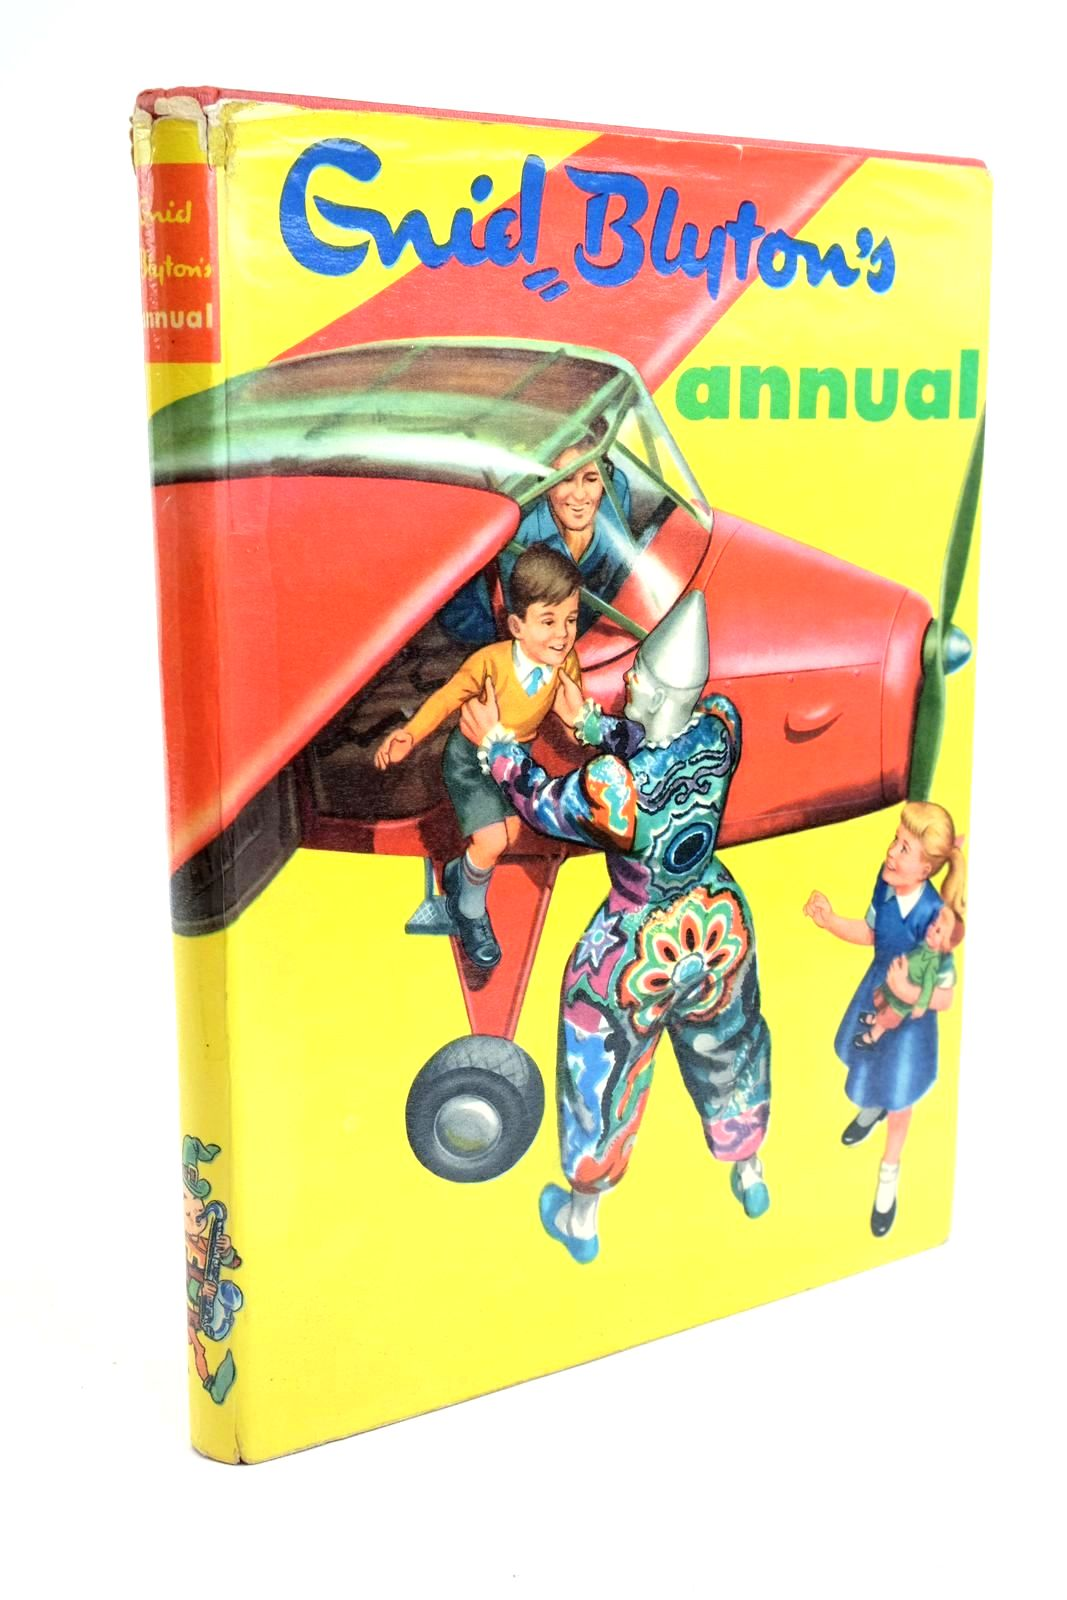 Photo of ENID BLYTON'S ANNUAL written by Blyton, Enid published by Beaverbrook Newspapers Limited (STOCK CODE: 1321602)  for sale by Stella & Rose's Books